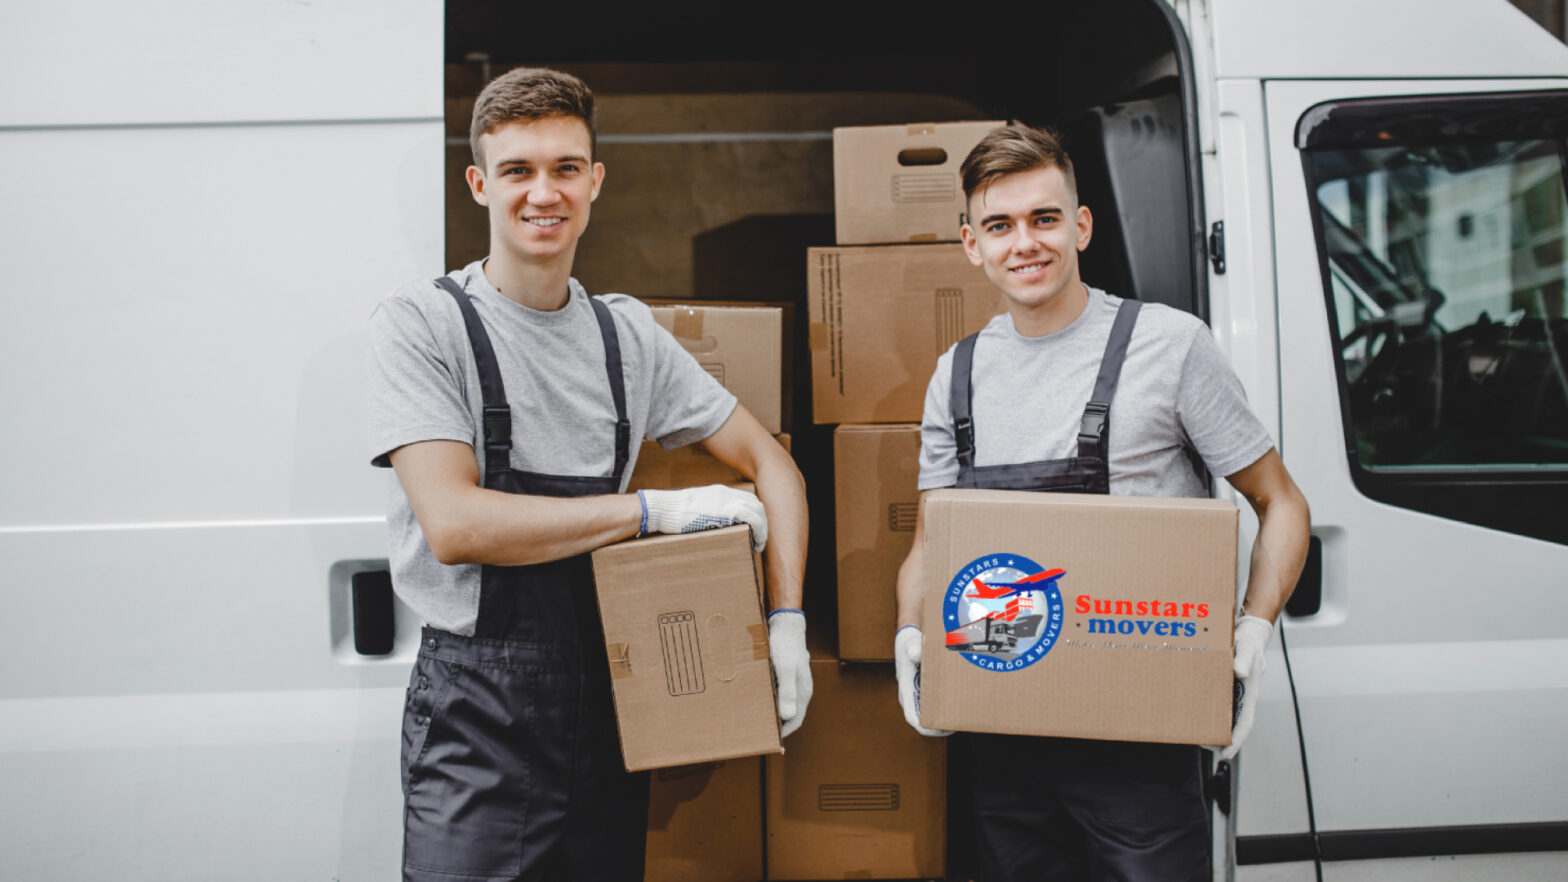 Best local movers Sharjah – sunstars movers